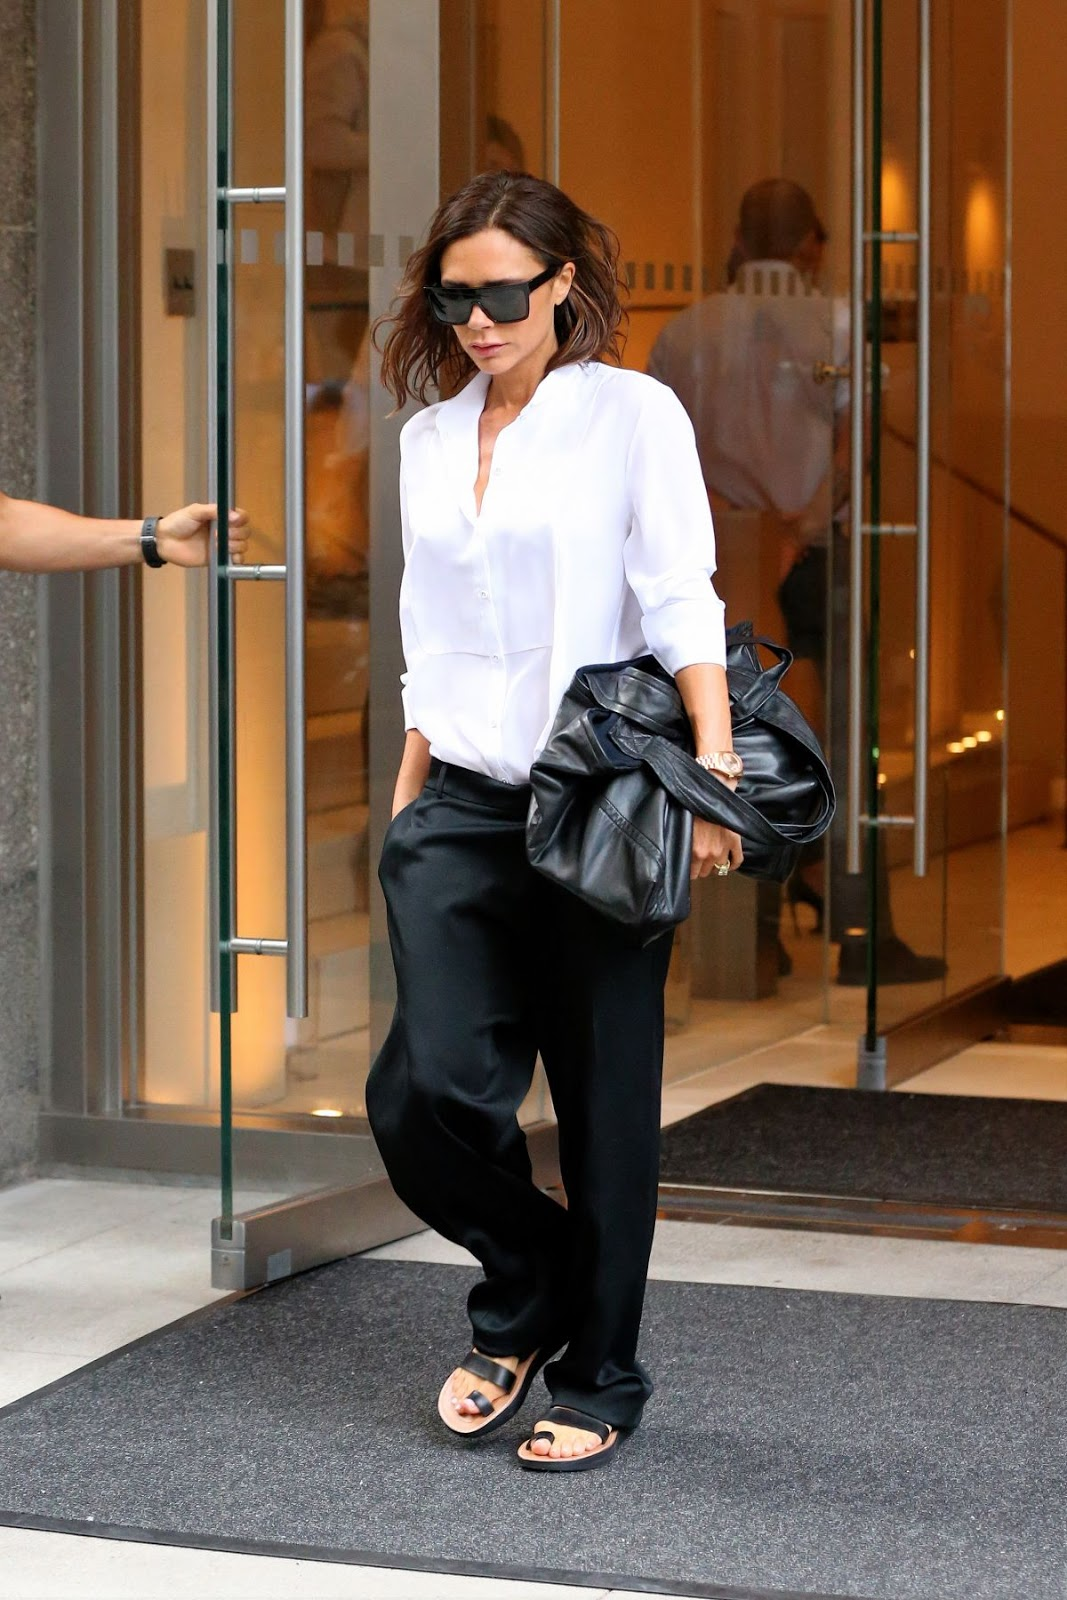 HQ Photos of Victoria Beckham Leaves her Hotel in New York